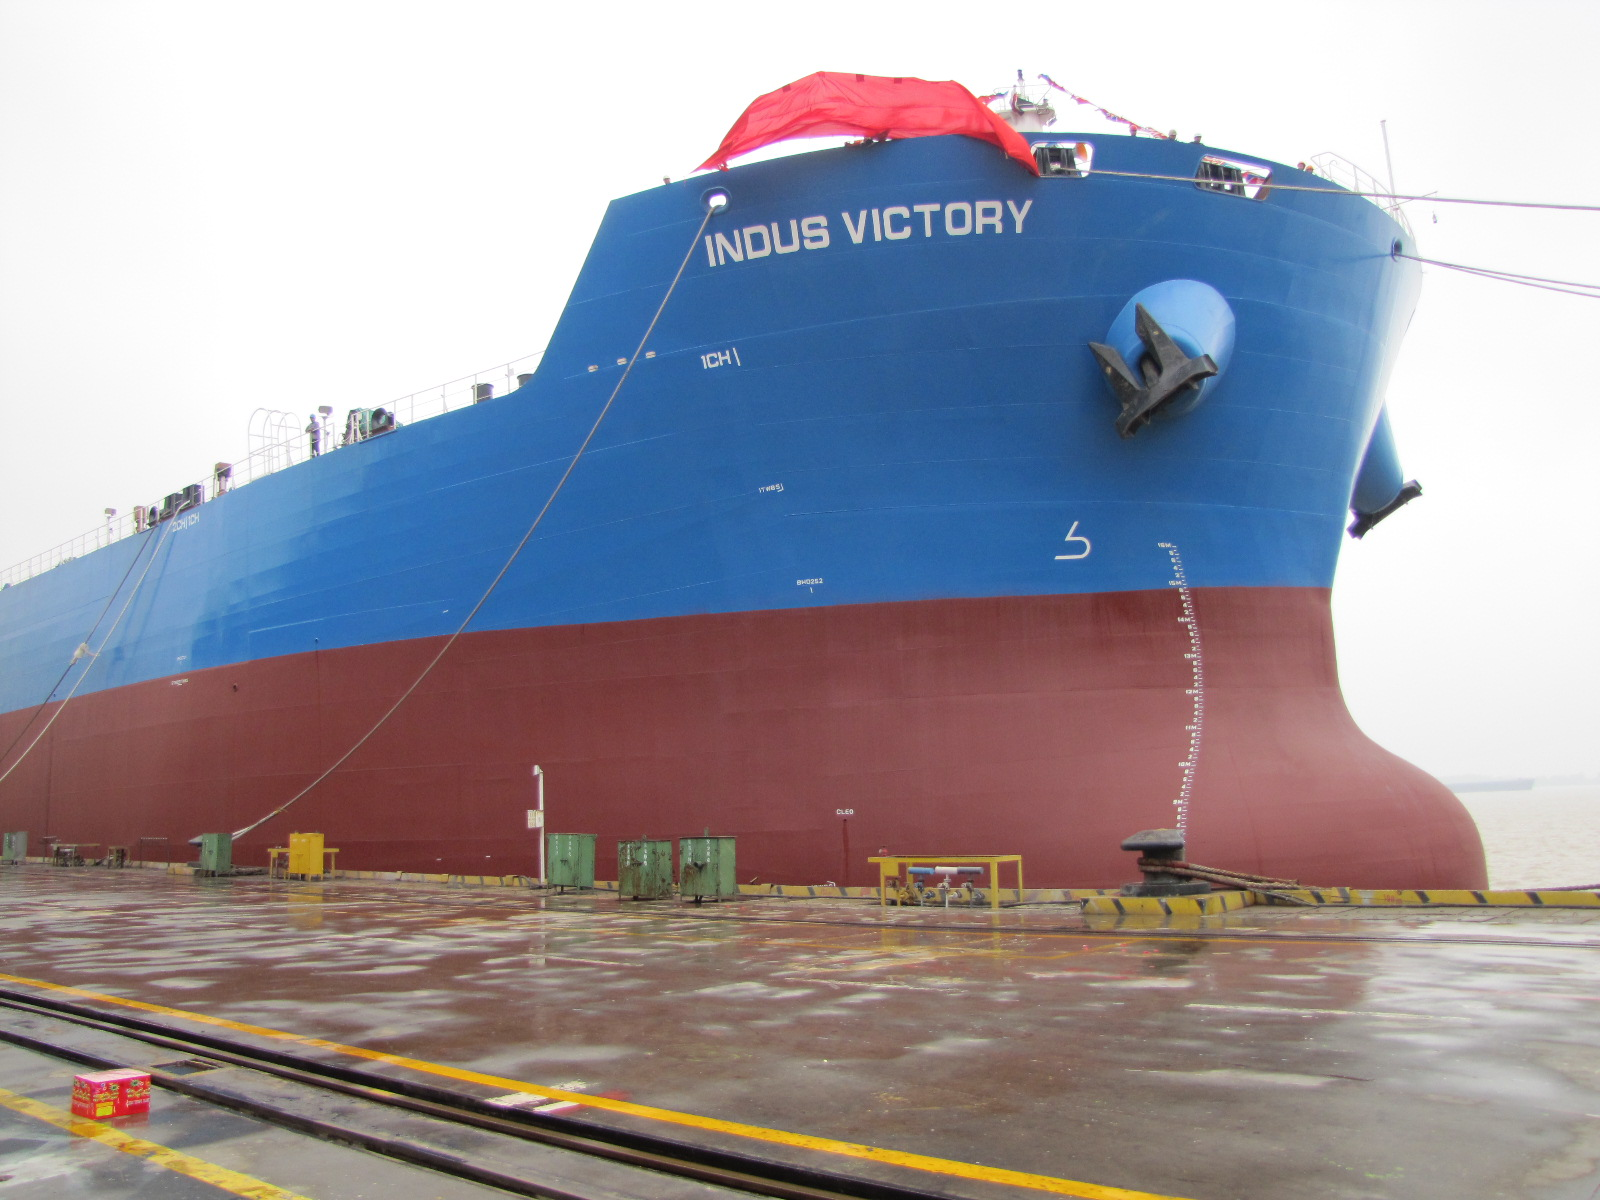 Indus Victory joins our fleet as the fourth ship.